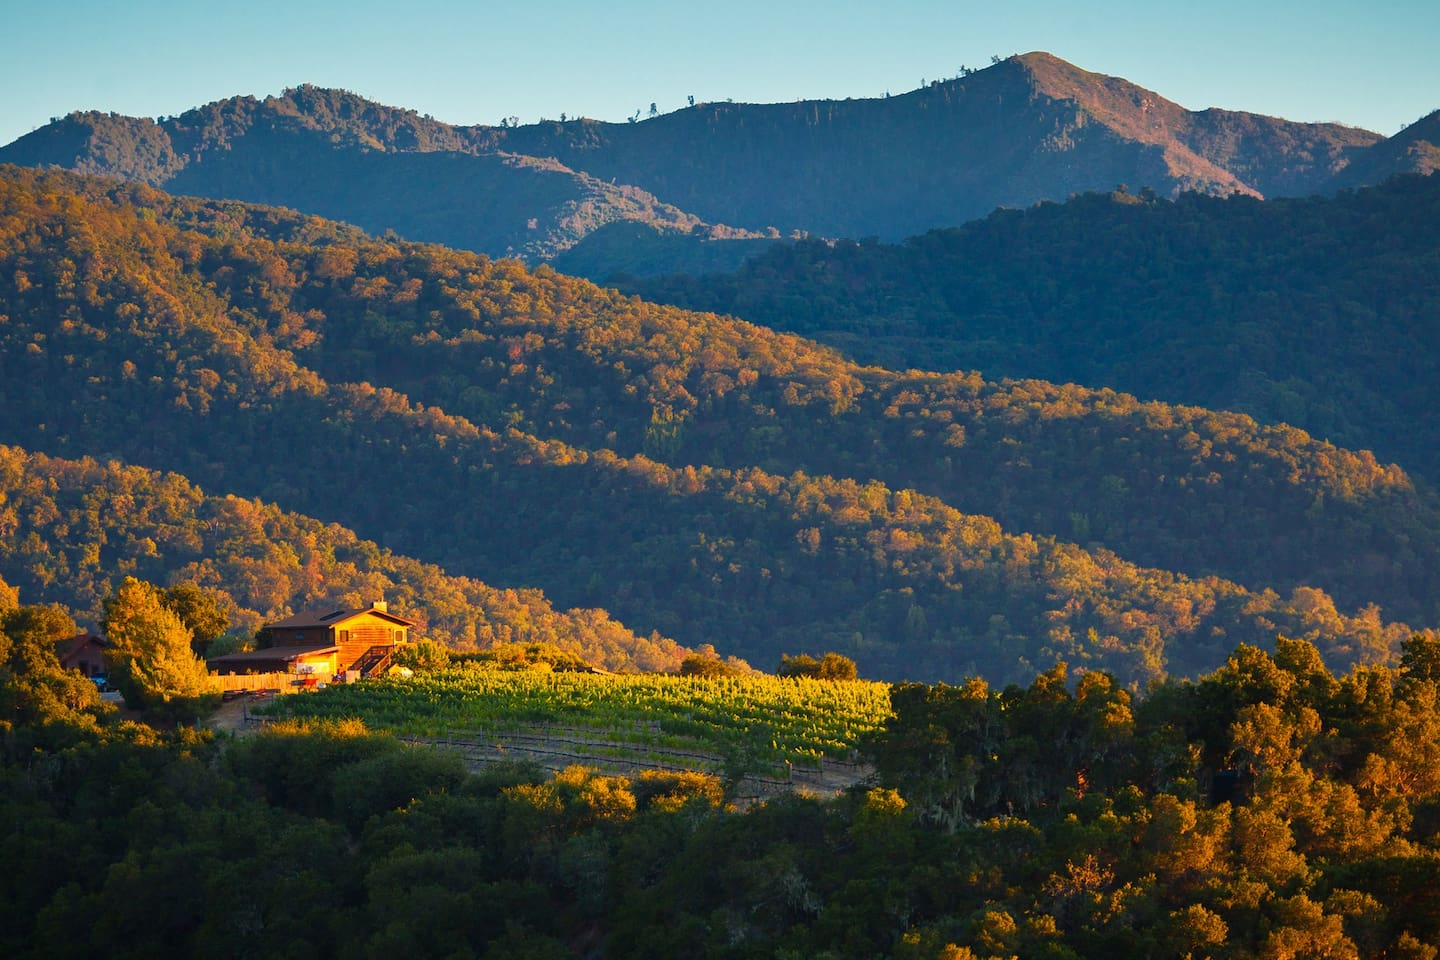 Your Vineyard Cottage amongst the Carmel Valley Mountains and Vines!